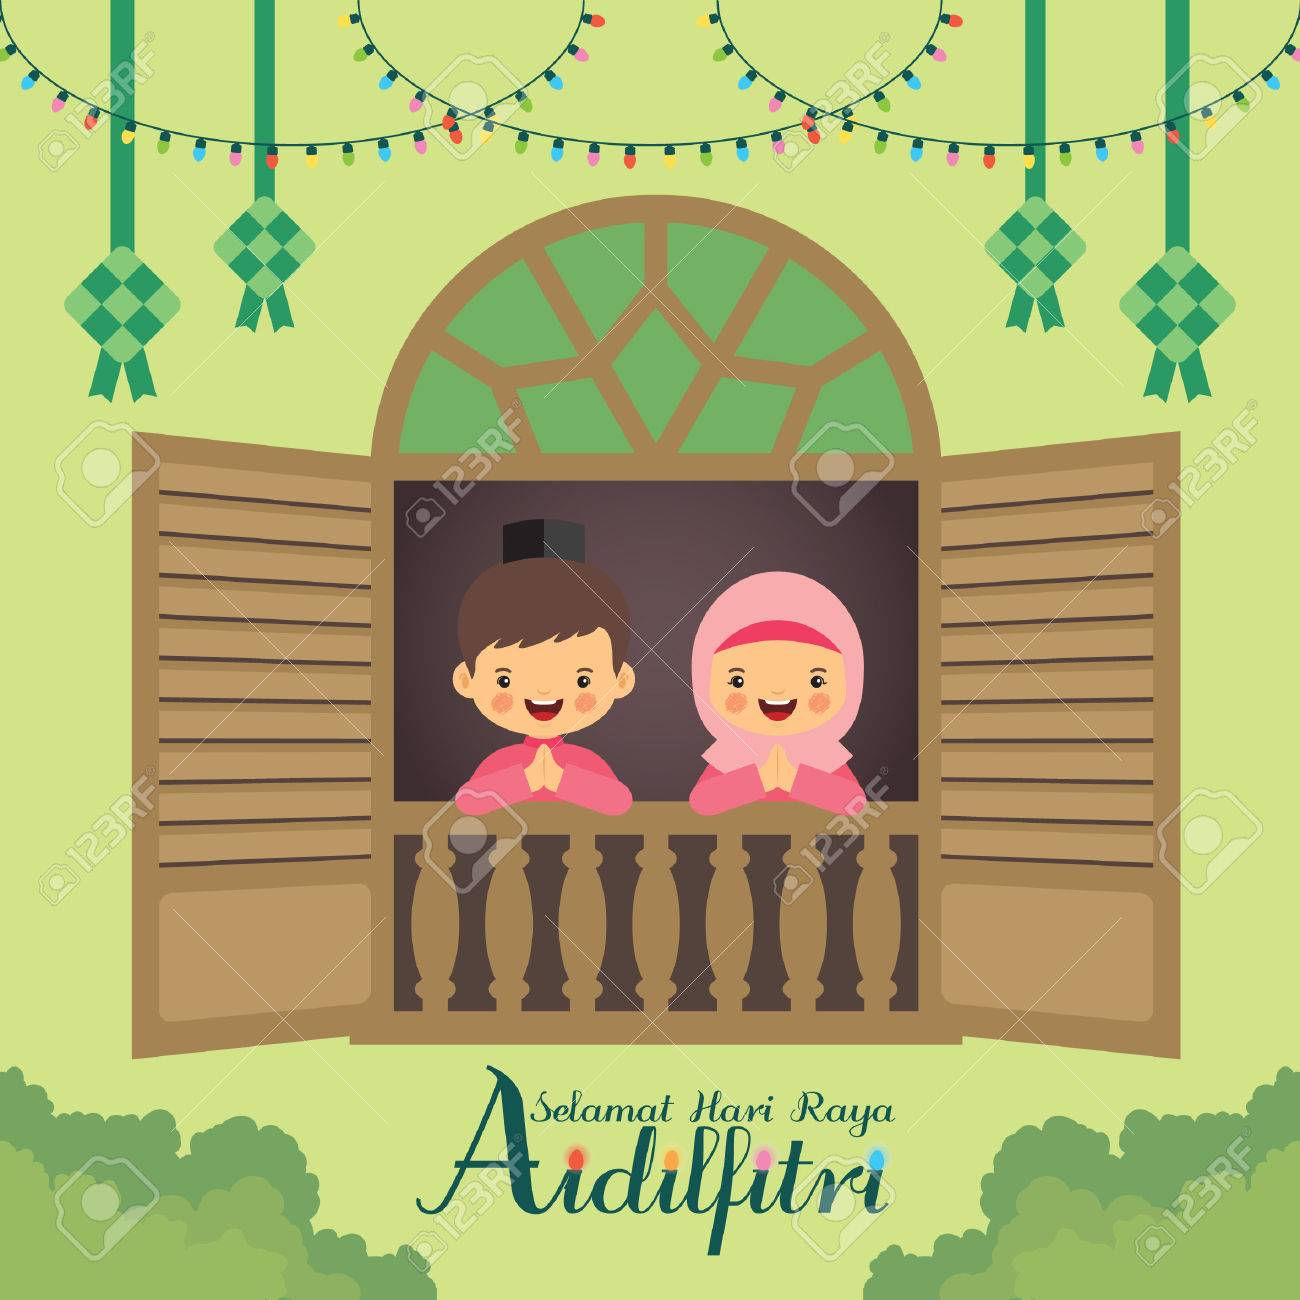 hari raya aidilfitri vector illustration cute muslim boy and girl with traditional malay window frame